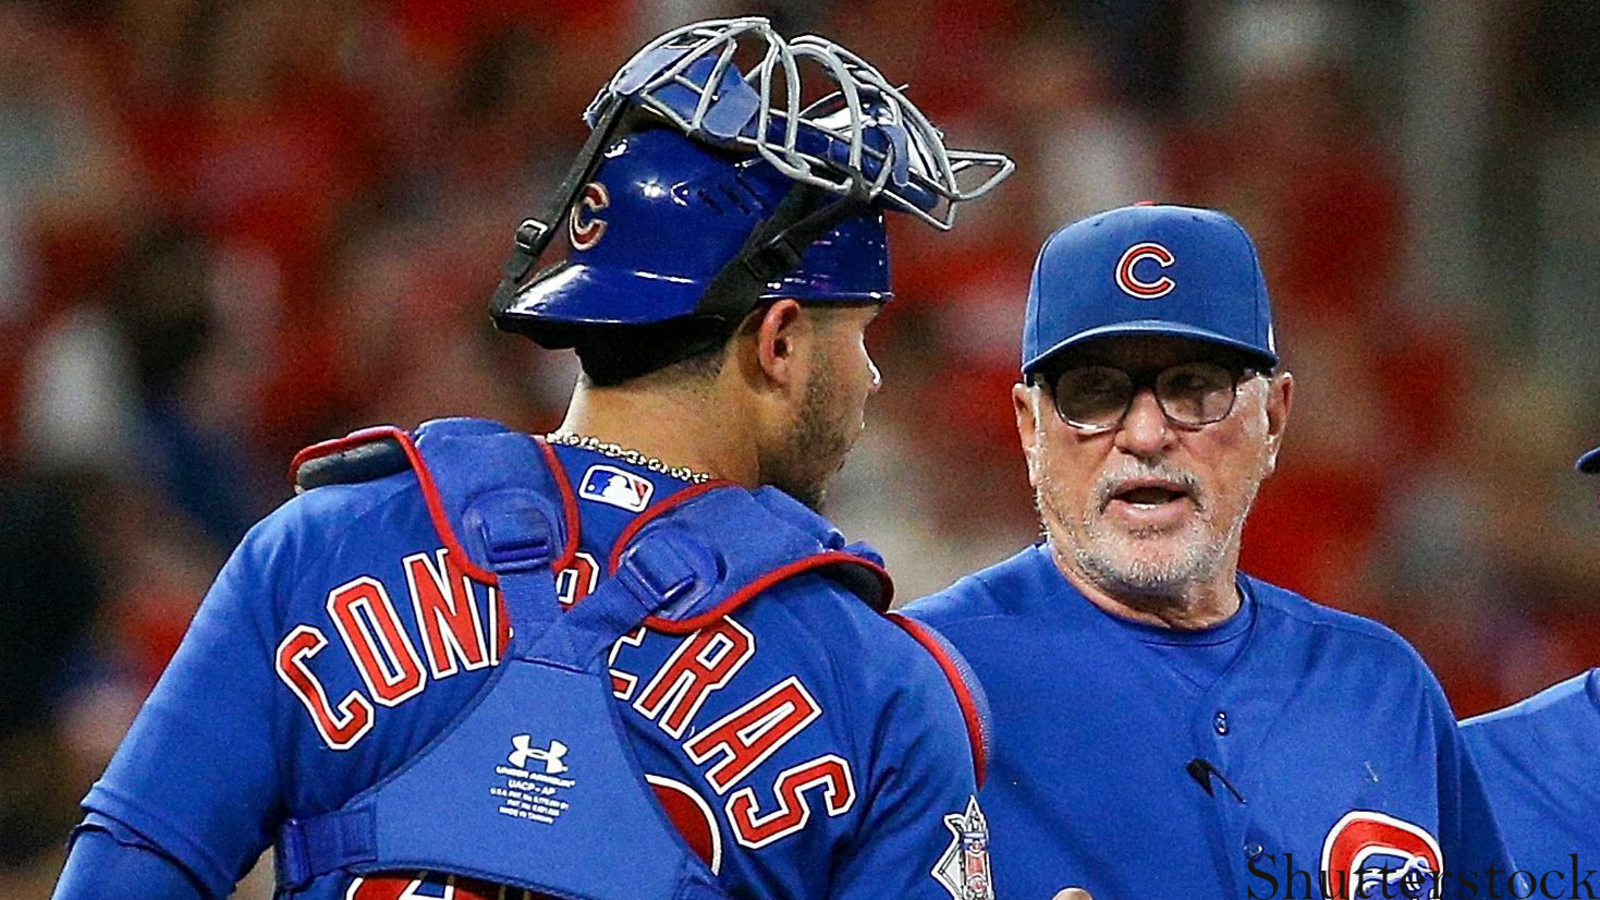 Cubs Future With Joe Maddon Out As Chicago Cubs Manager David Ross Expresses Interest In Opening Abc7 Chicago